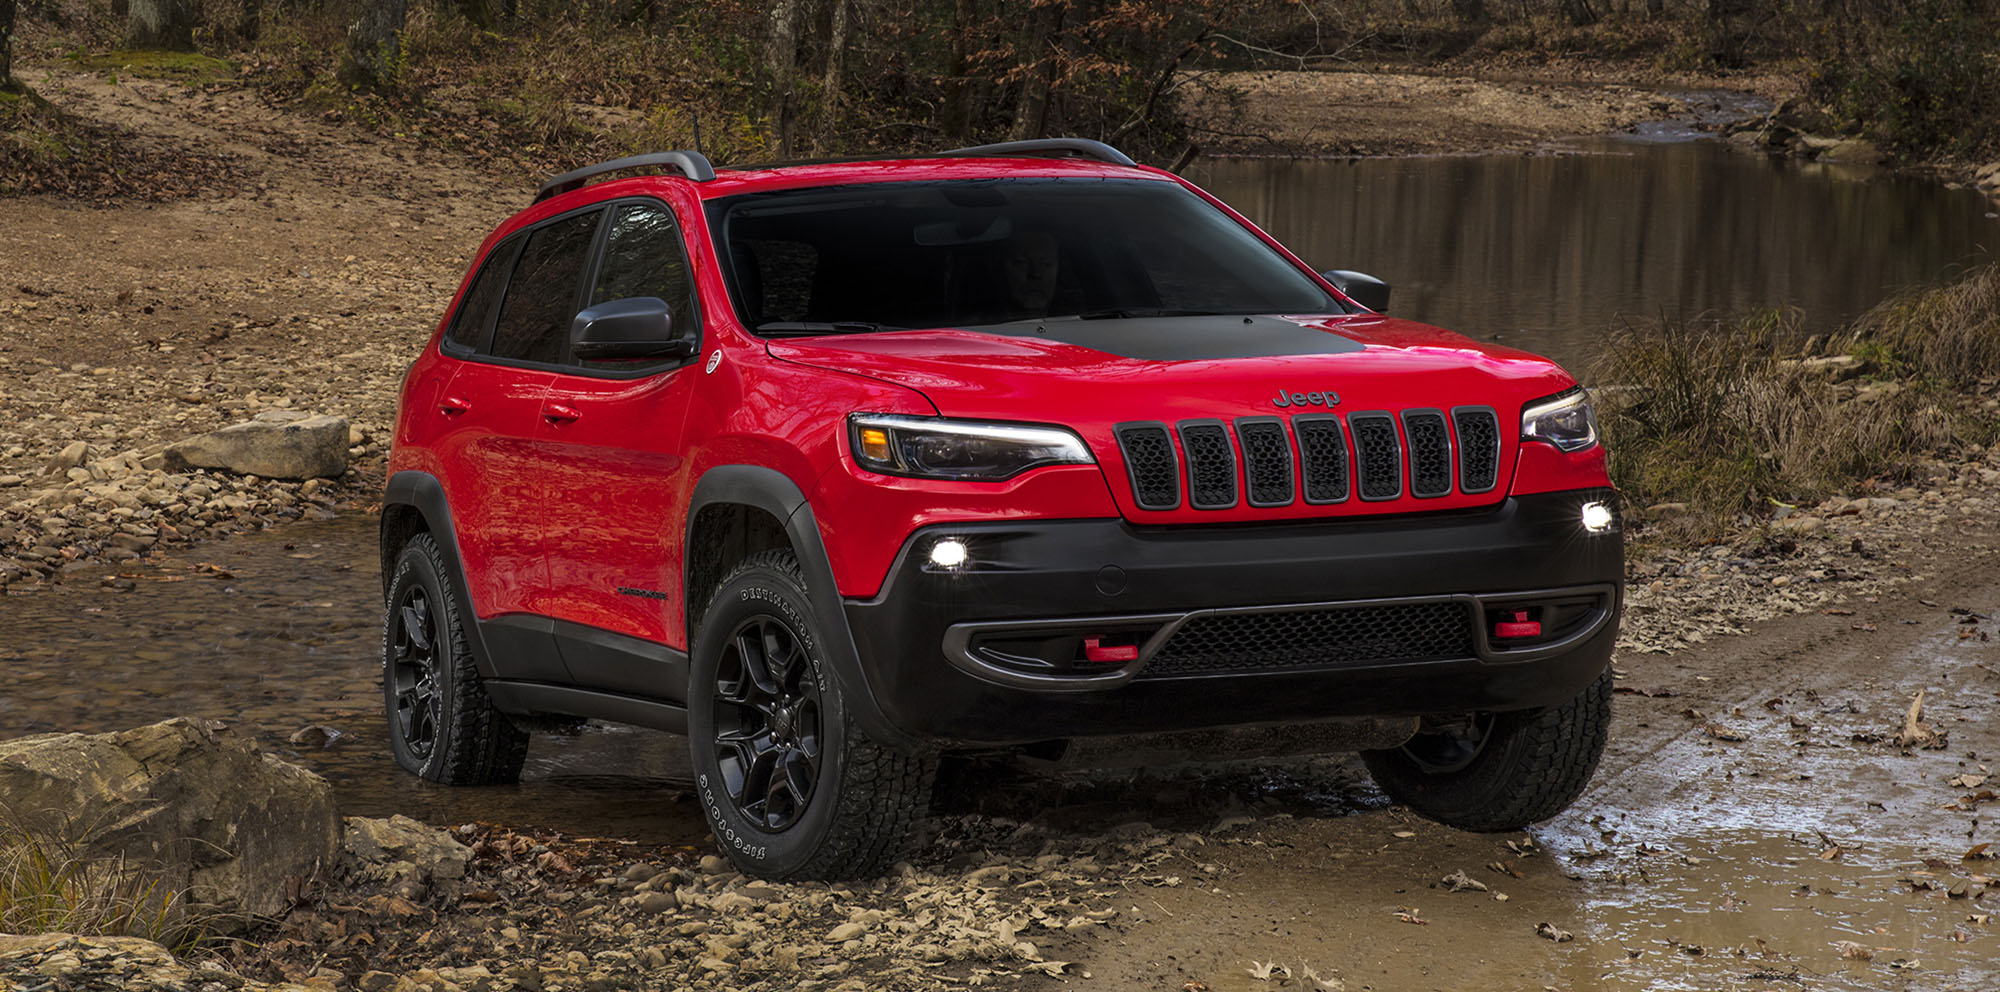 2018 Jeep Cherokee facelift unveiled - Photos